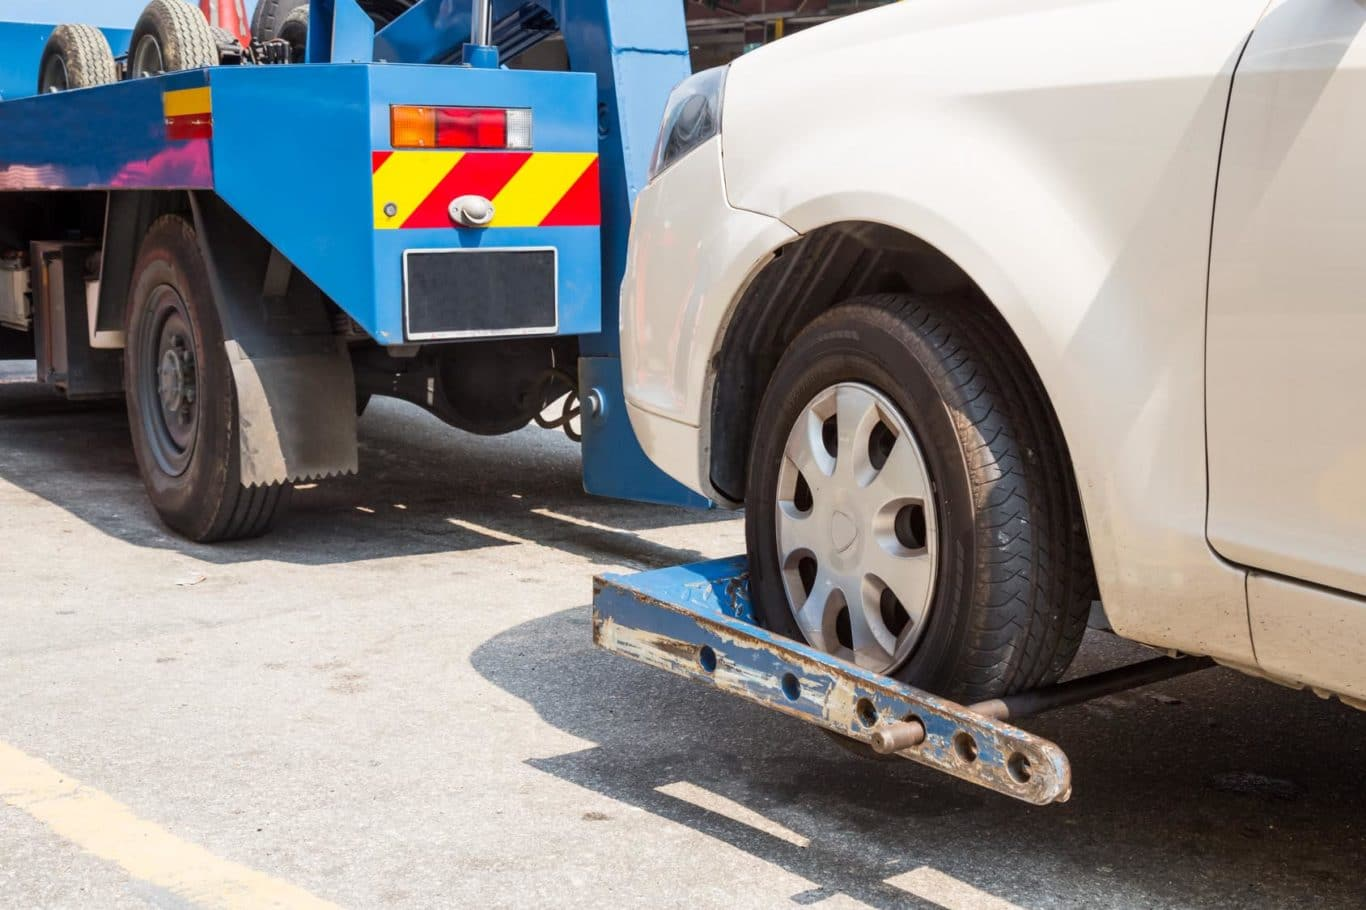 Templeogue expert Towing And Recovery Dublin services